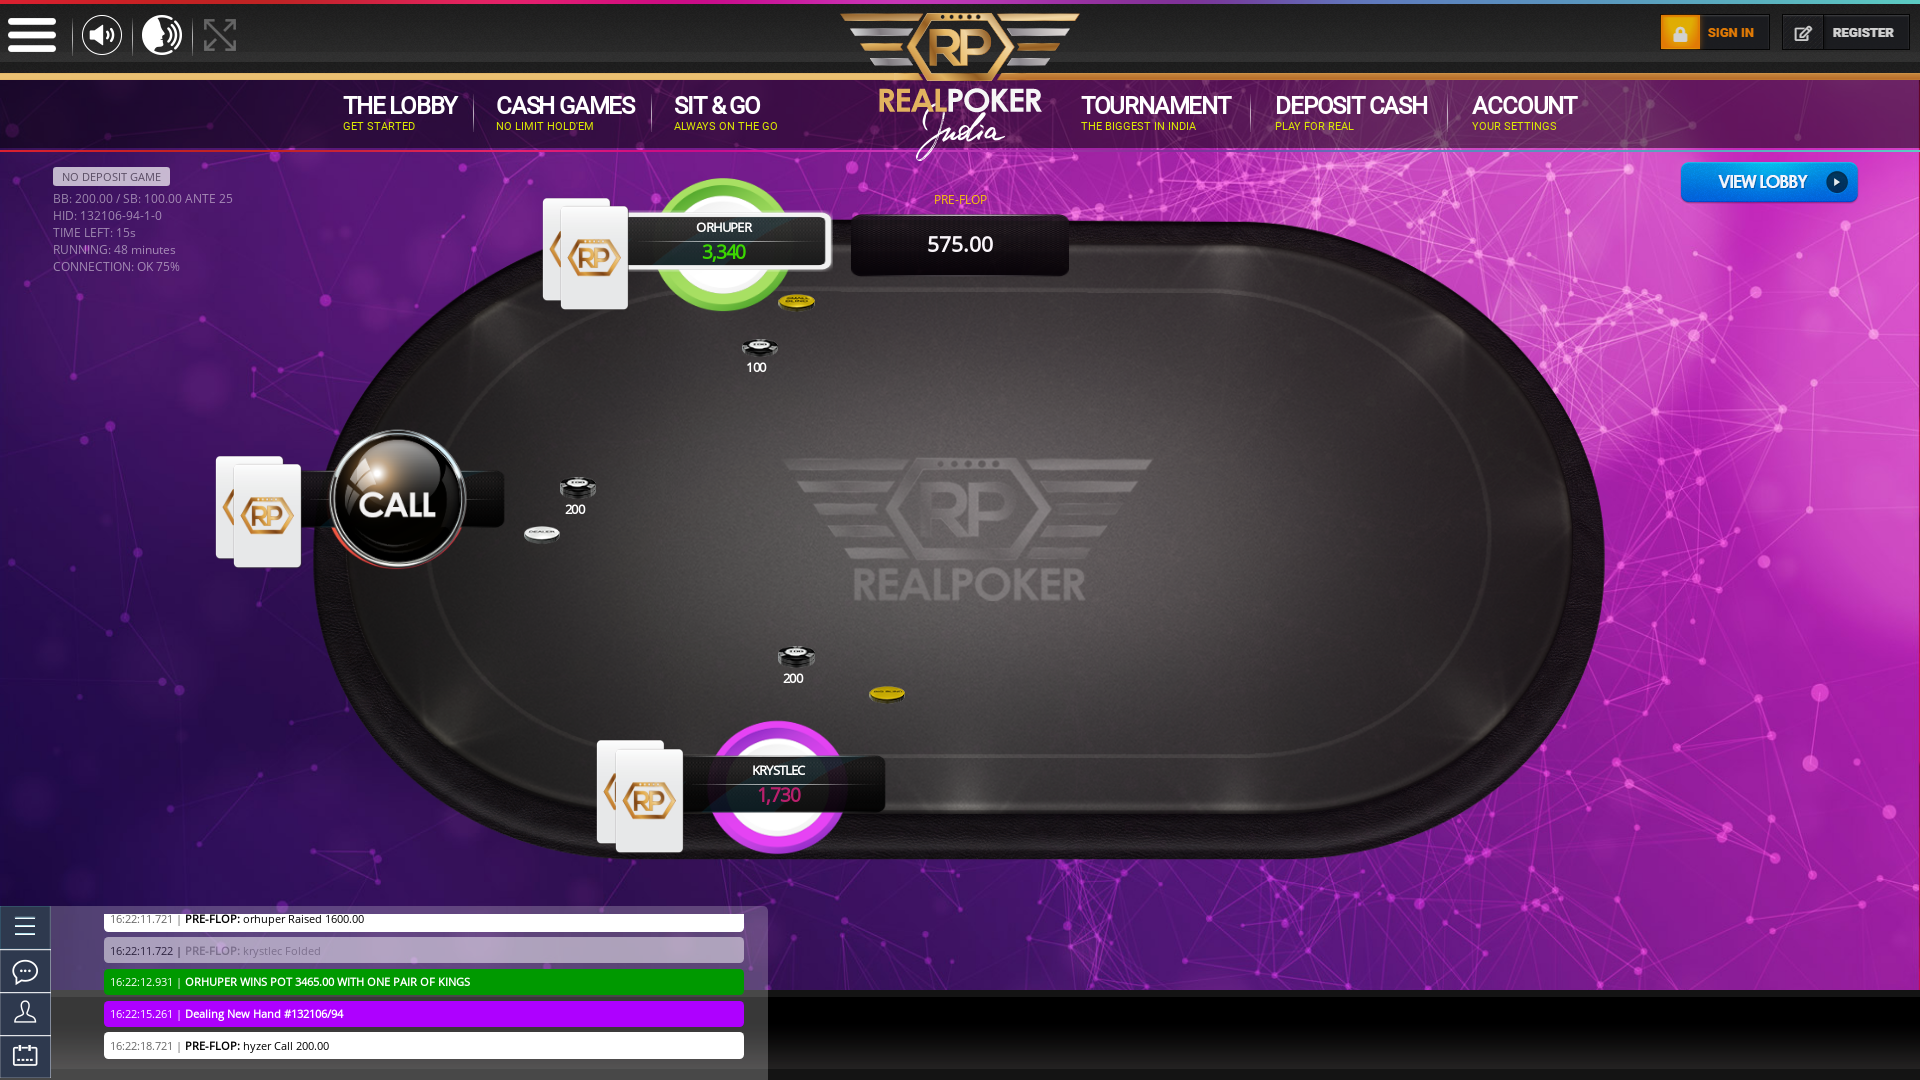 Indian online poker on a 10 player table in the 48th minute match up